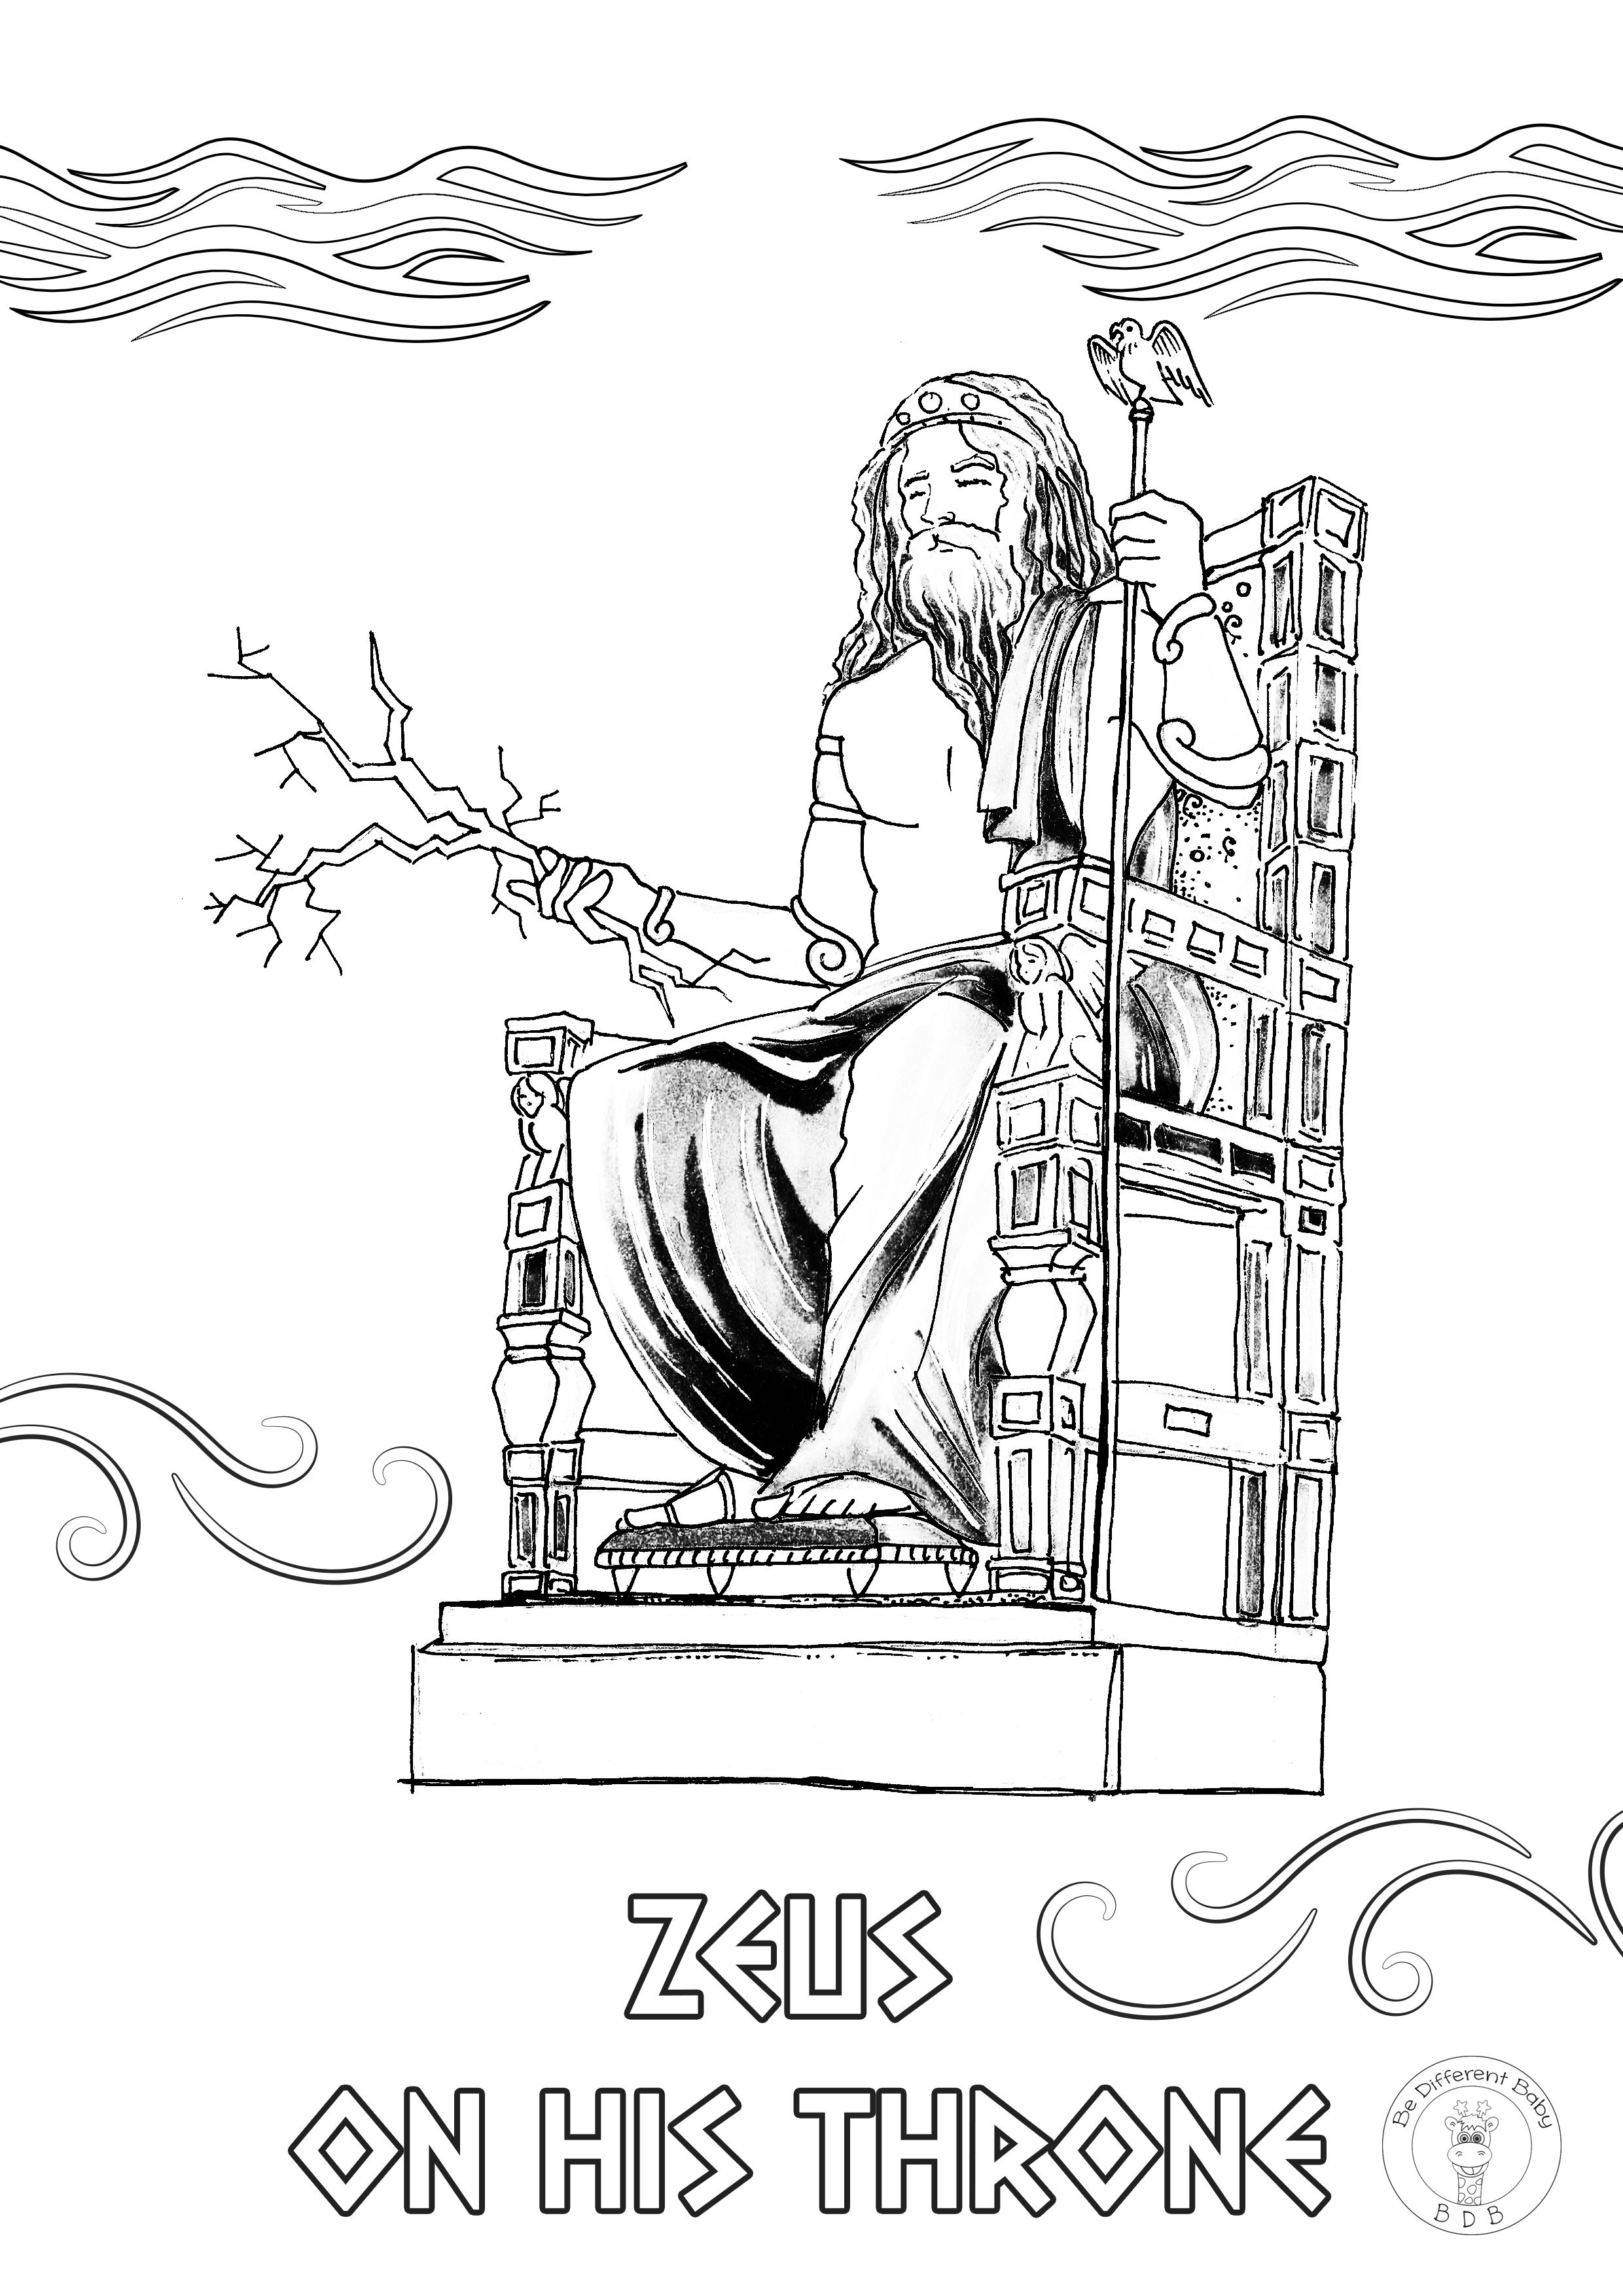 Greek Mythology Coloring Pages If You And Your Children Love Greek Mythology This Is A Must Have 12 Unique Hand Drawn Mythological Scenes In 2021 Greek Gods And Goddesses Coloring Books Gods